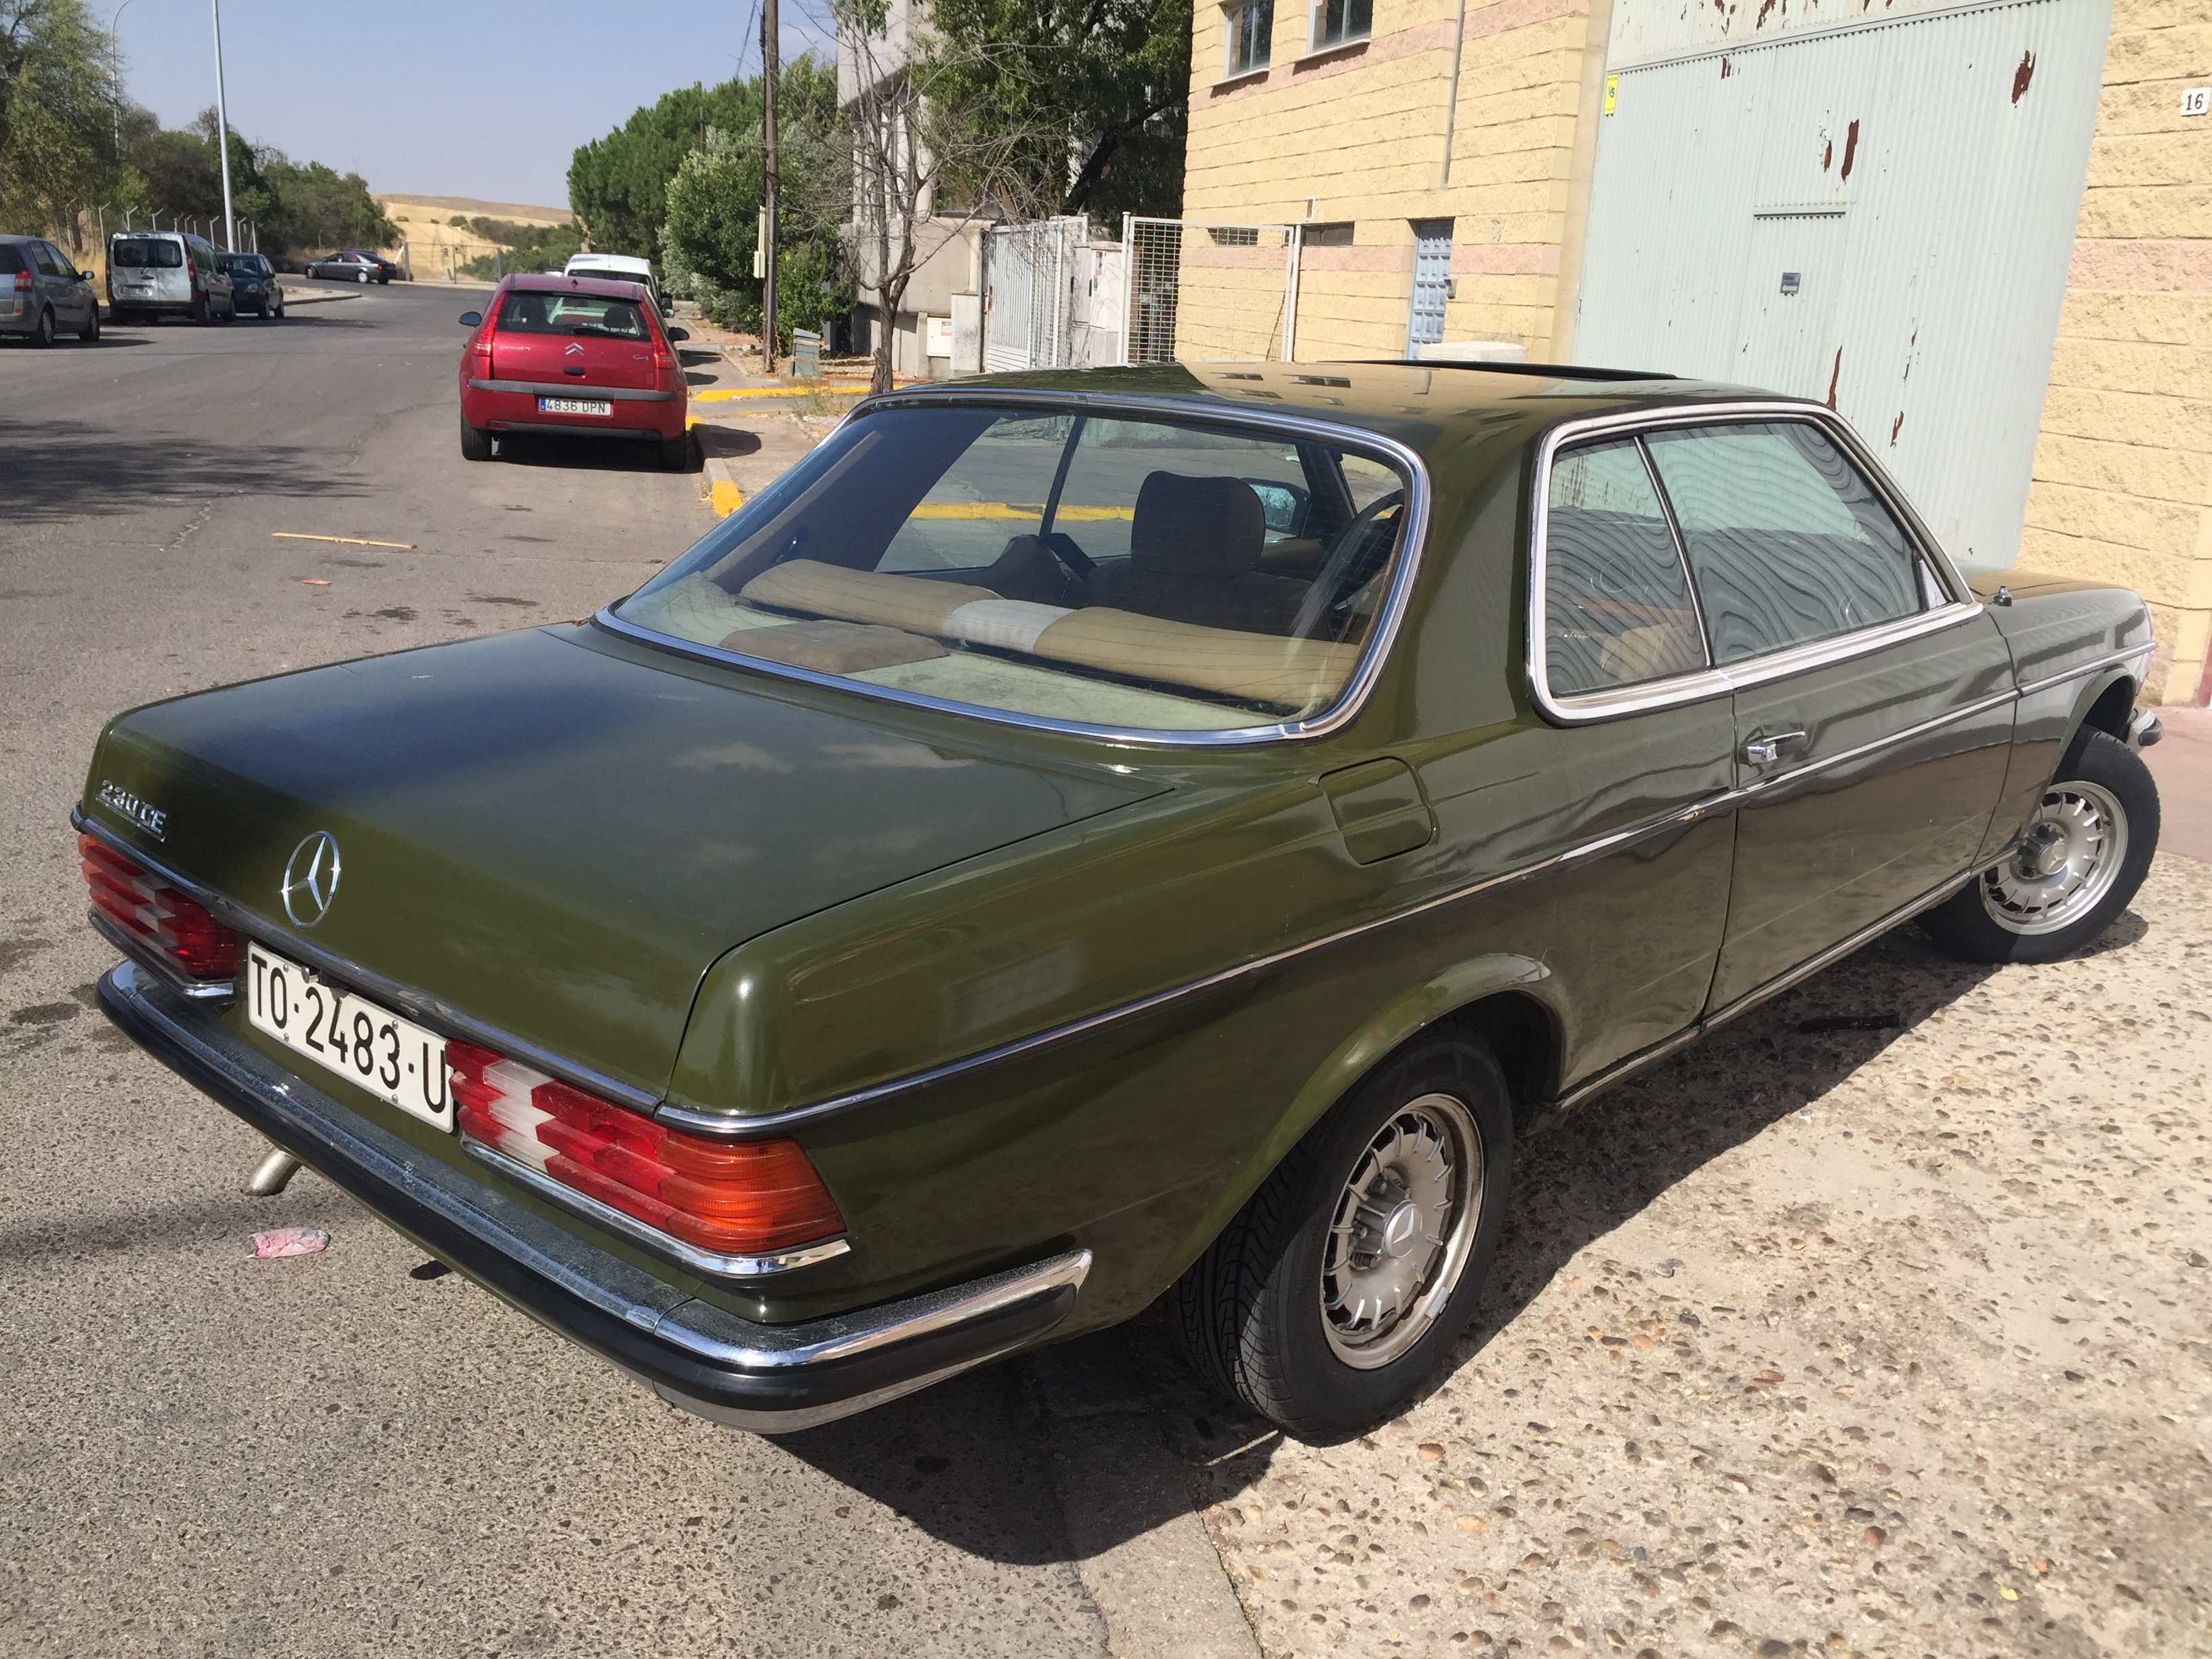 Bl spares mercedes benz 350sl w107 for Spares for mercedes benz